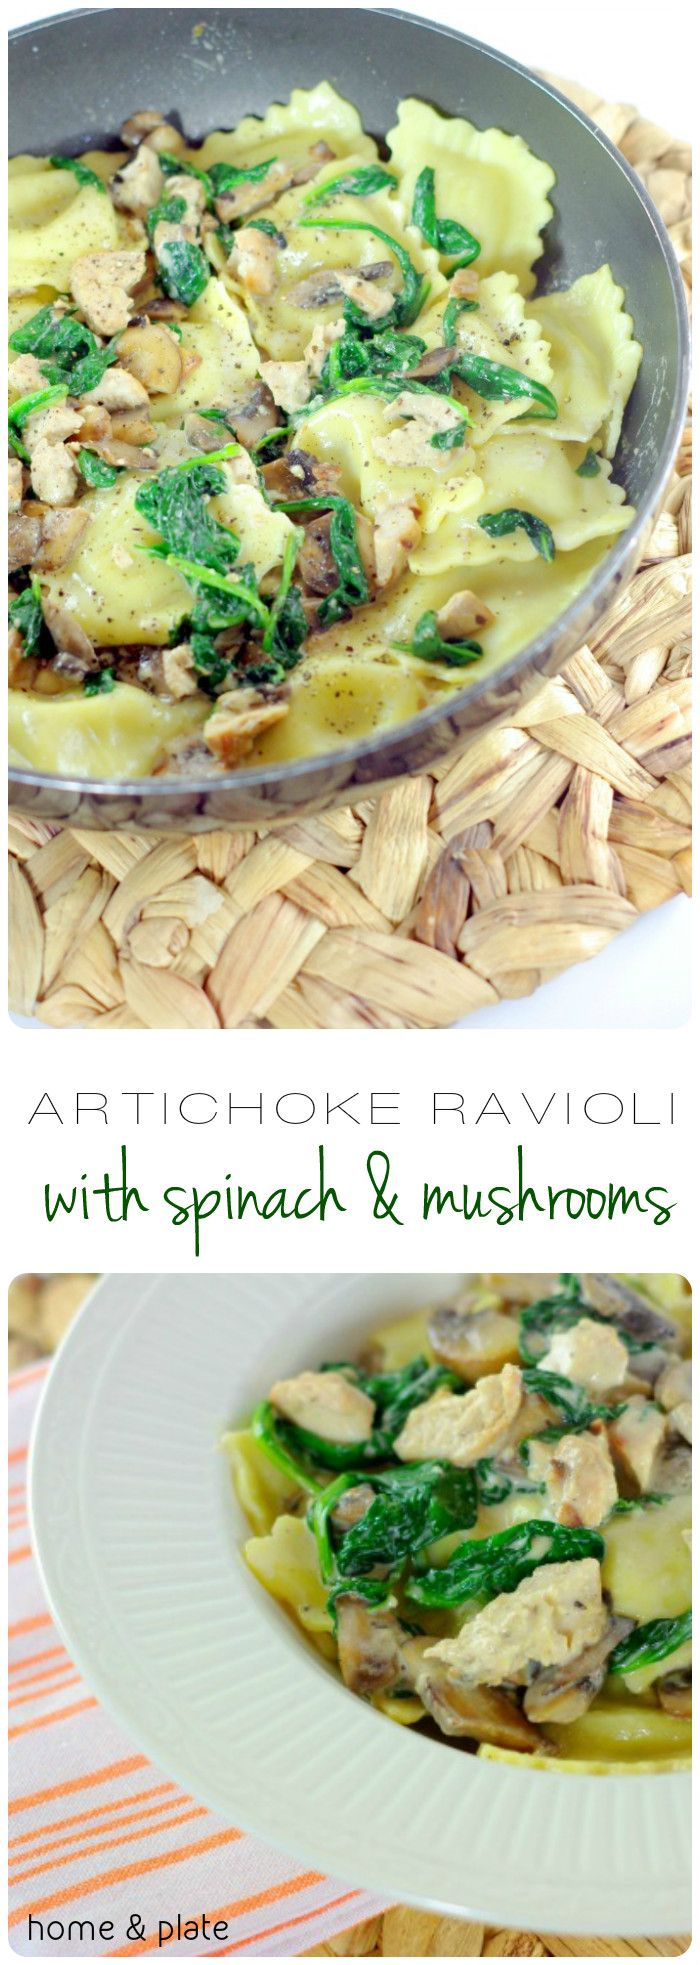 Artichoke Ravioli with Spinach & Mushrooms | Home & Plate | www.homeandplate.com | Creamy artichoke ravioli with wilted freshspinach and caramelized mushrooms is tossed with tender grilled chicken.